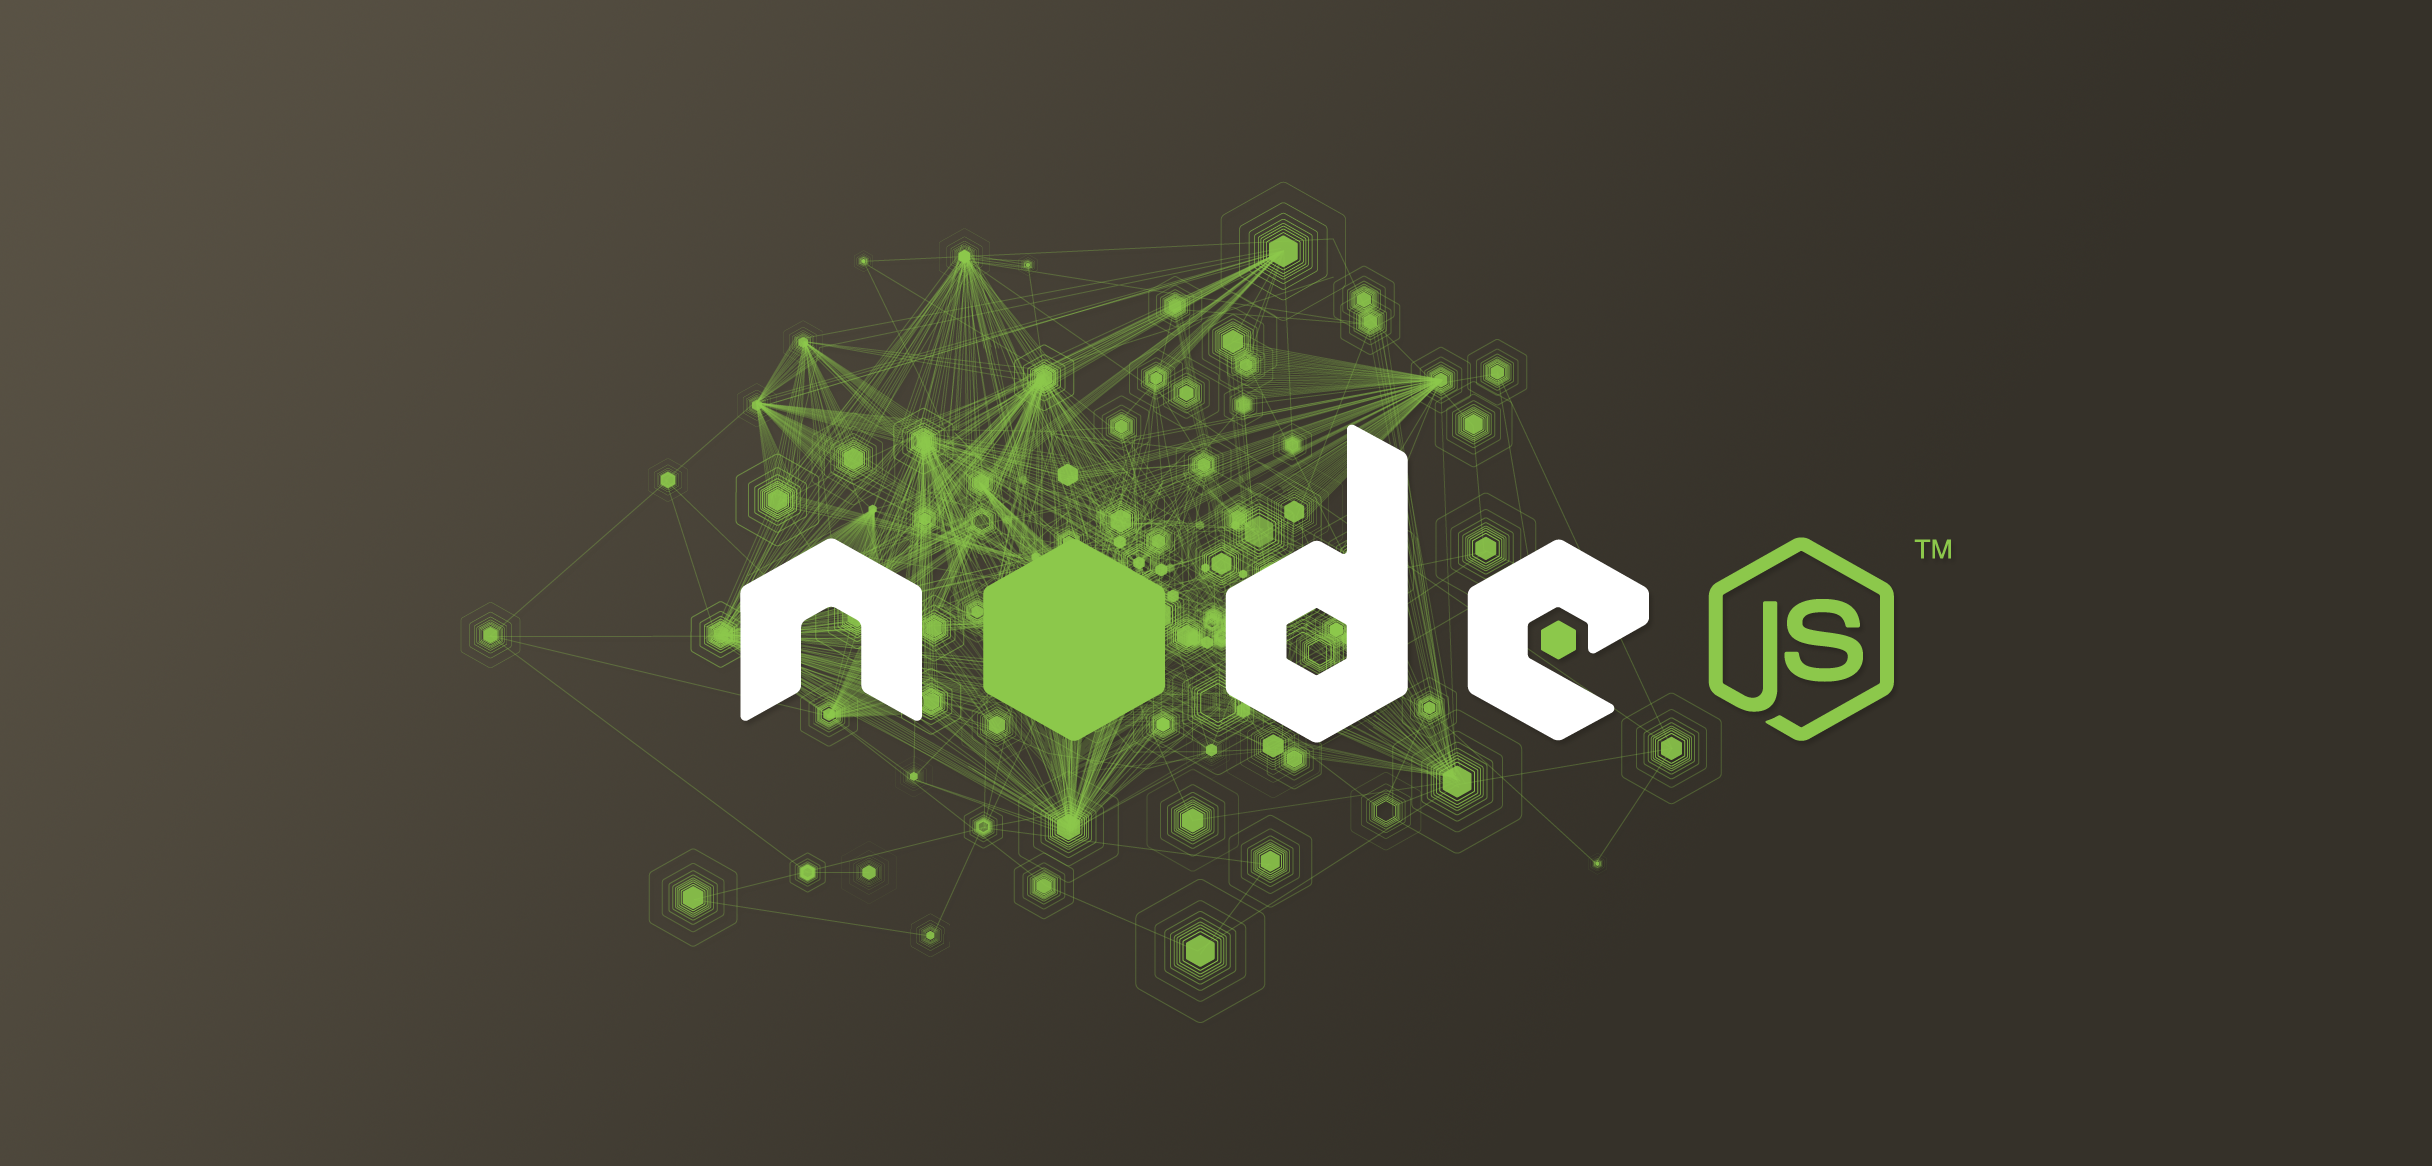 Node.Js framework for developing cross-platform mobile applications.